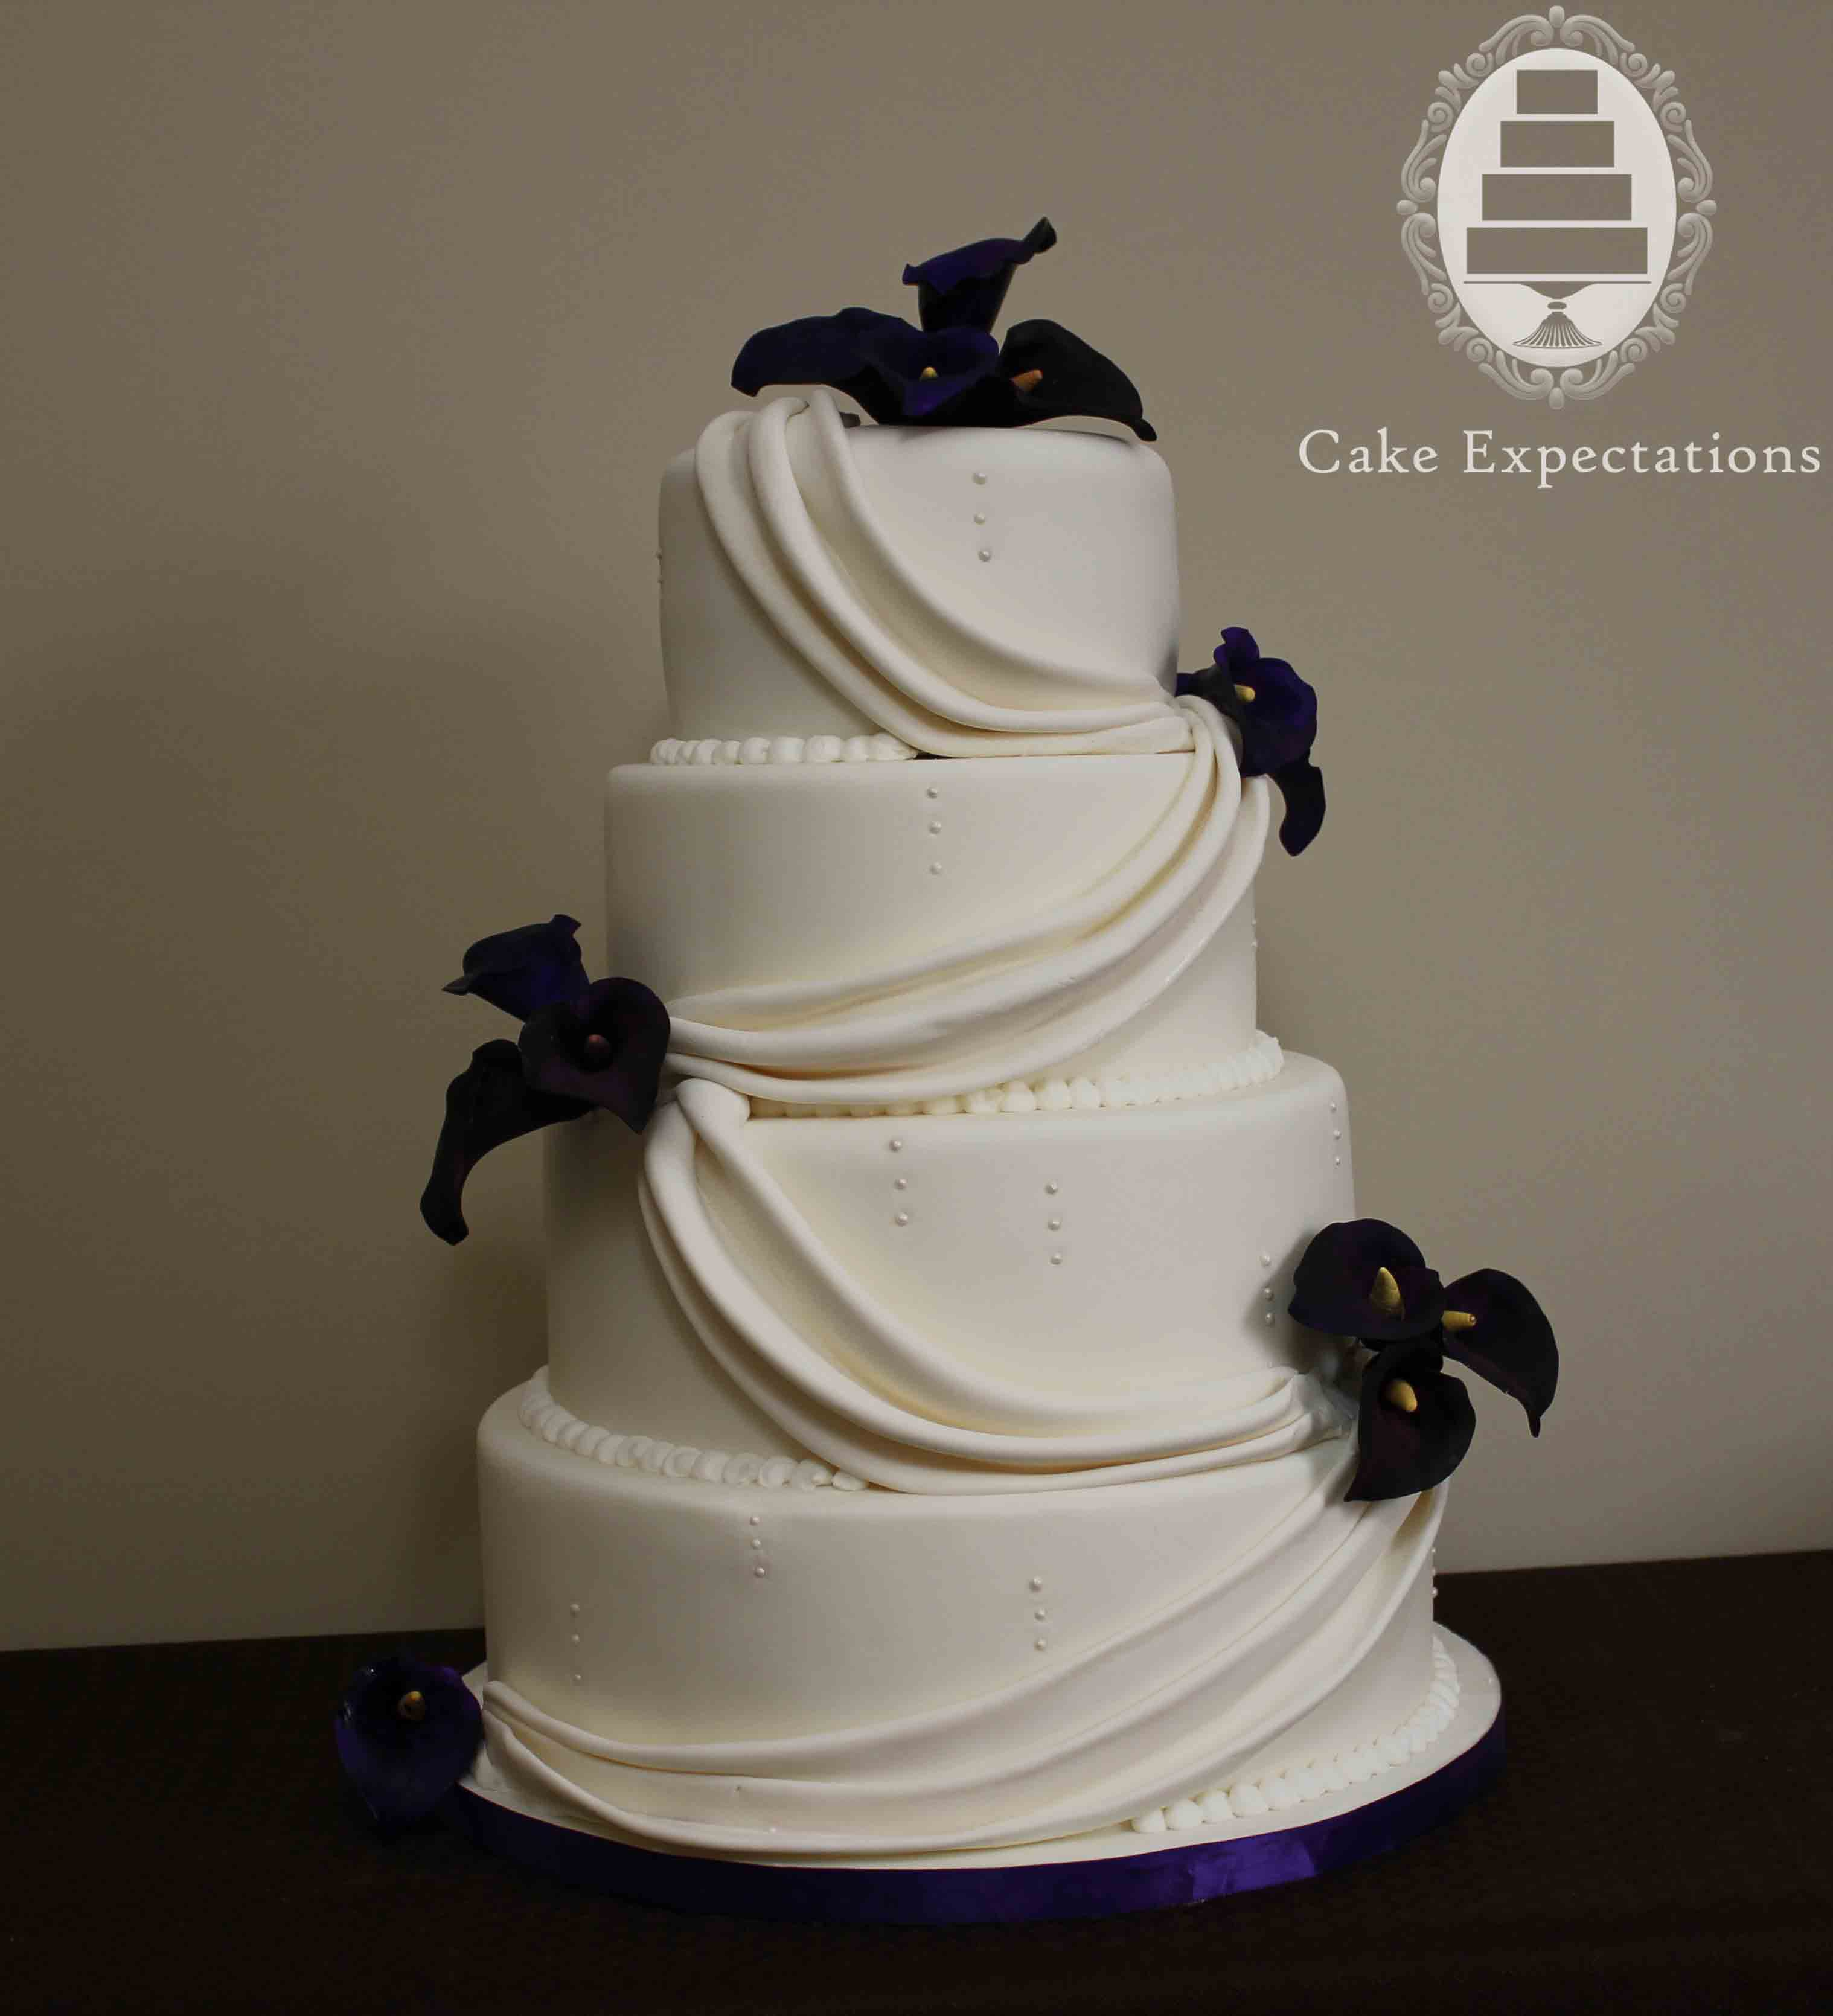 Cake Expectations – Cake Topper